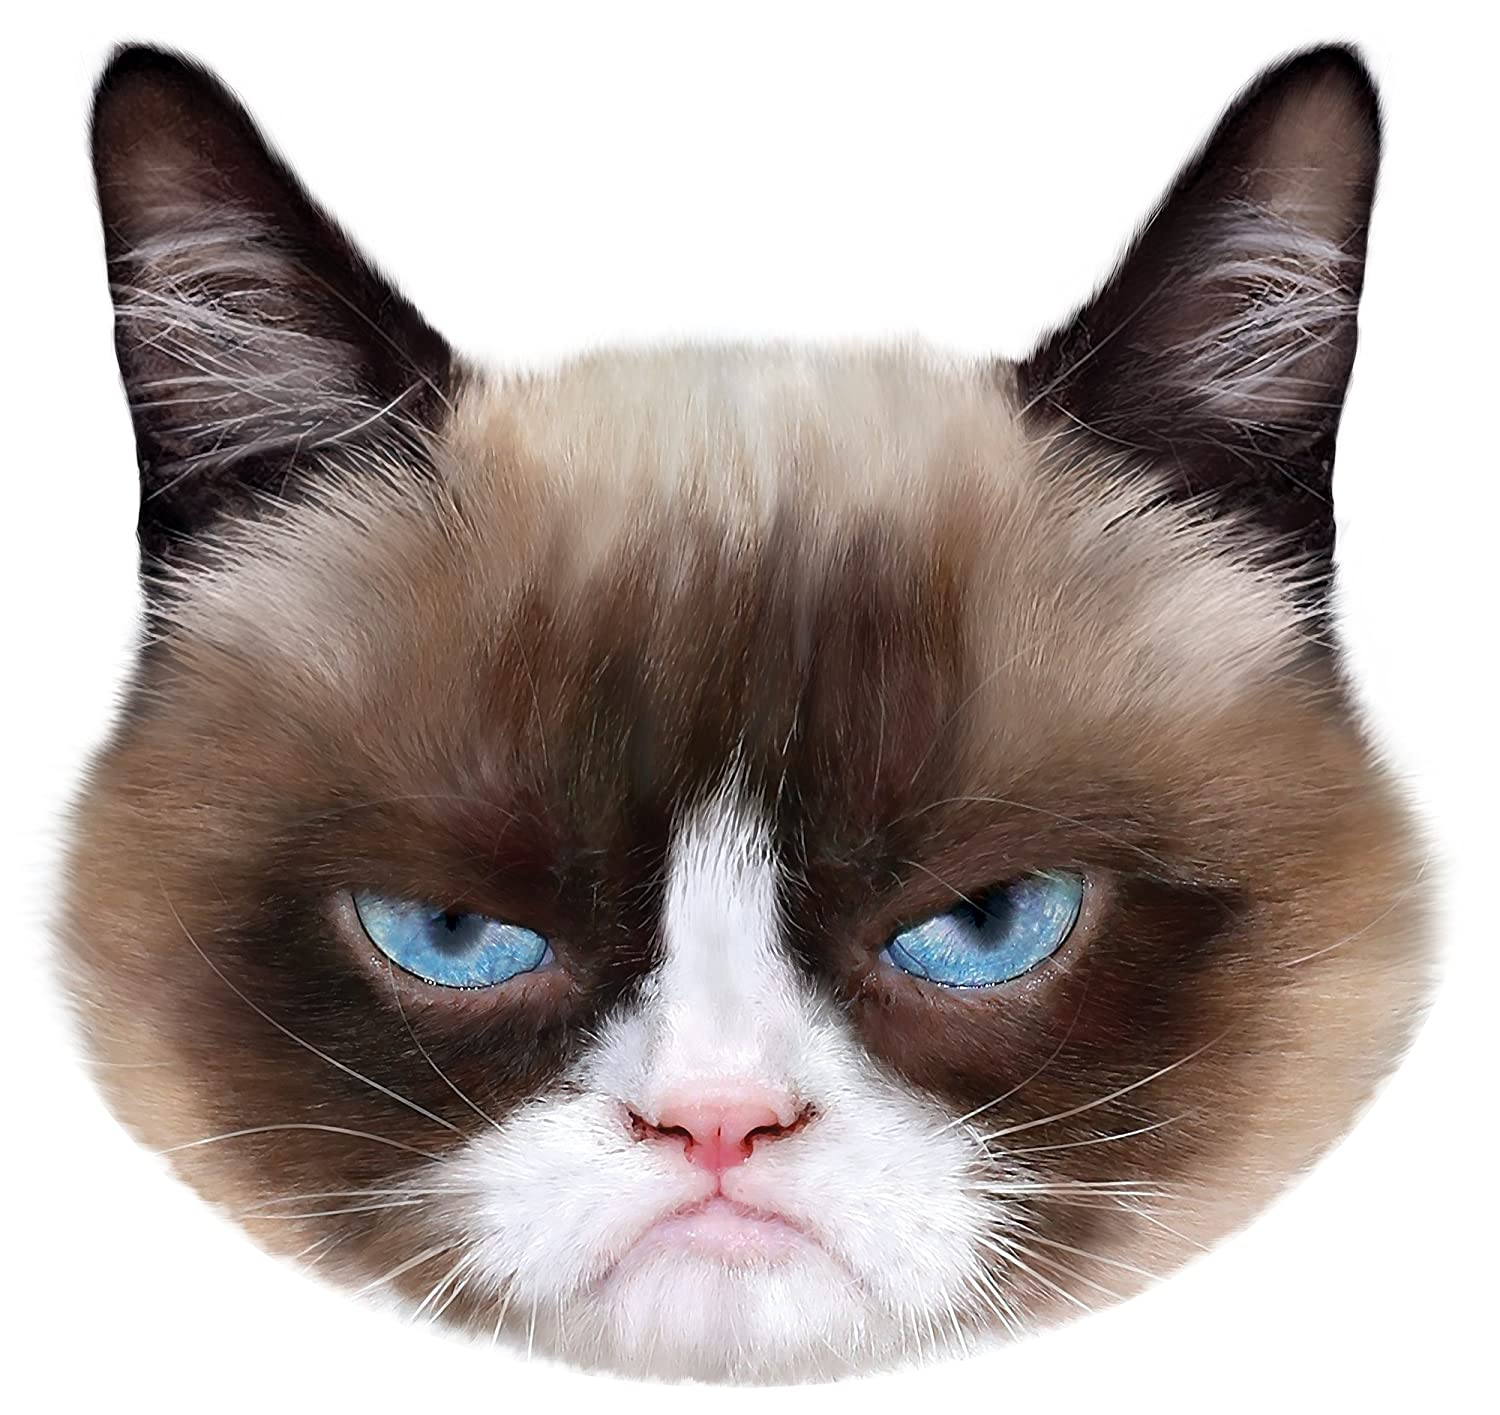 grumpy cat faces www pixshark com images galleries cat face silhouette clip art cat face clip art free